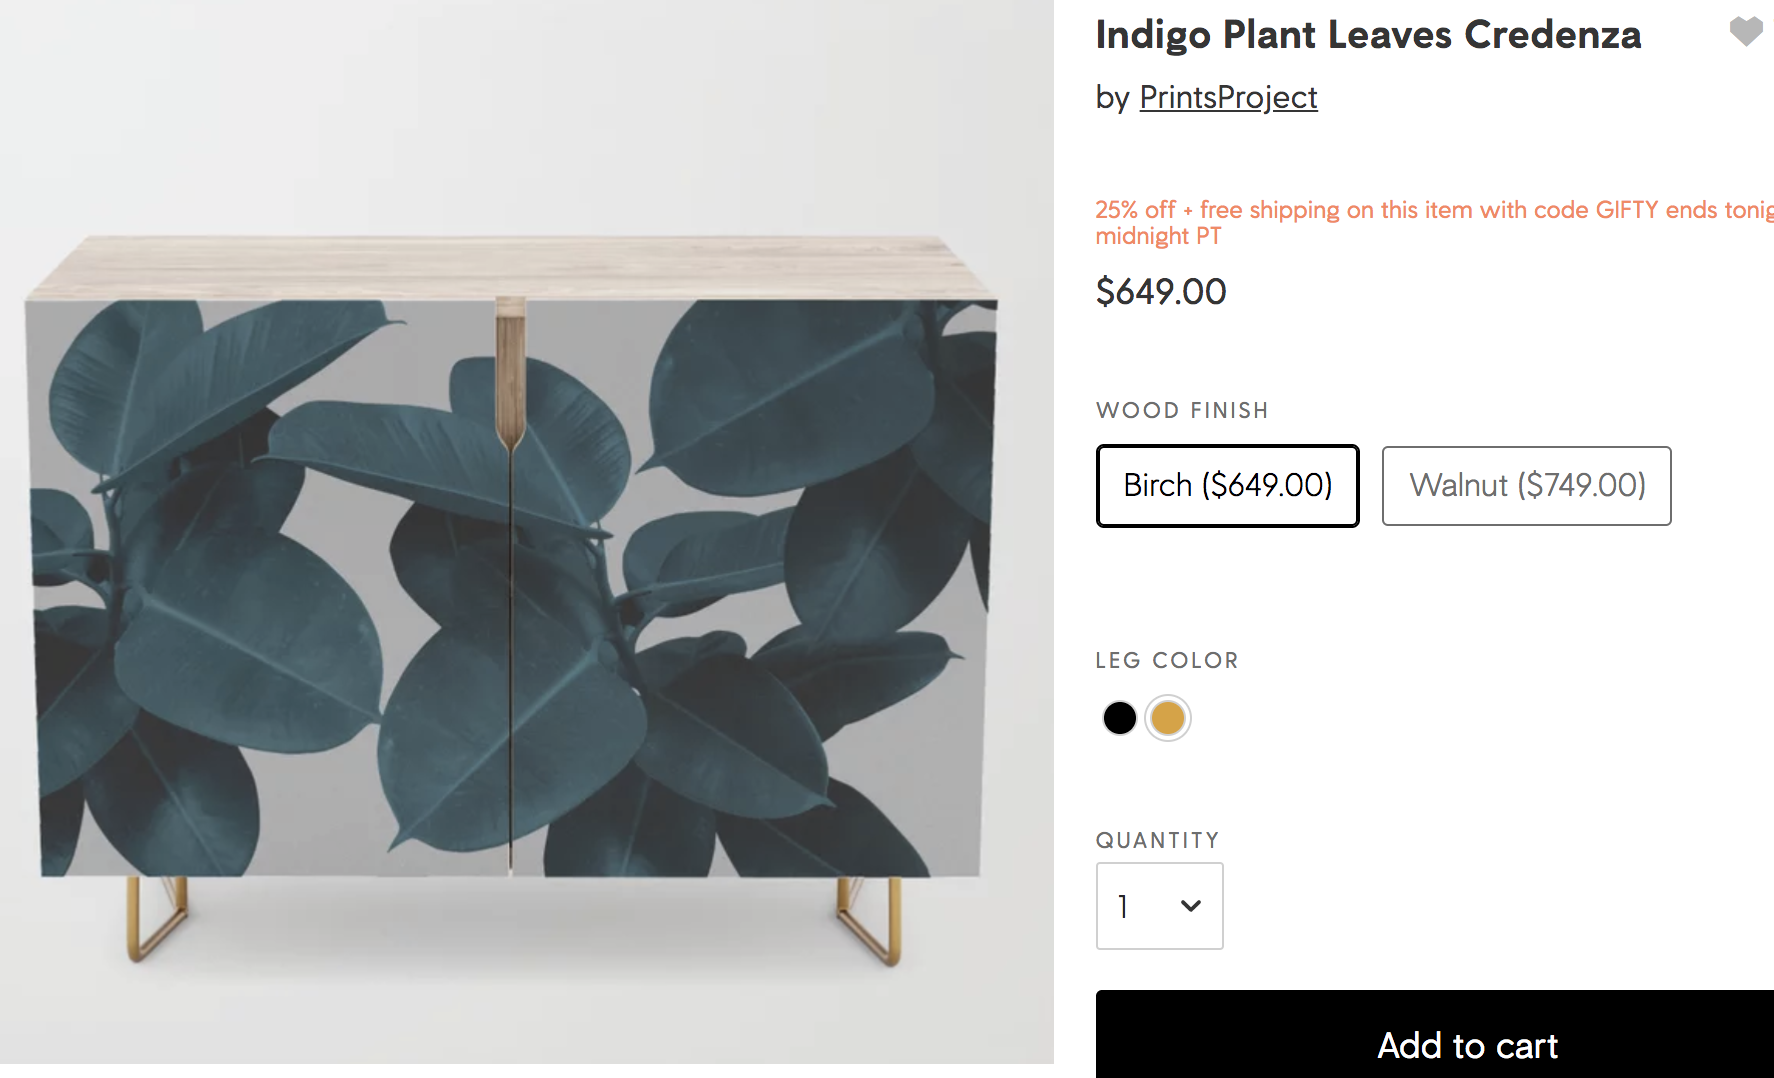 Society 6 UX design helps shoppers find similar styles.